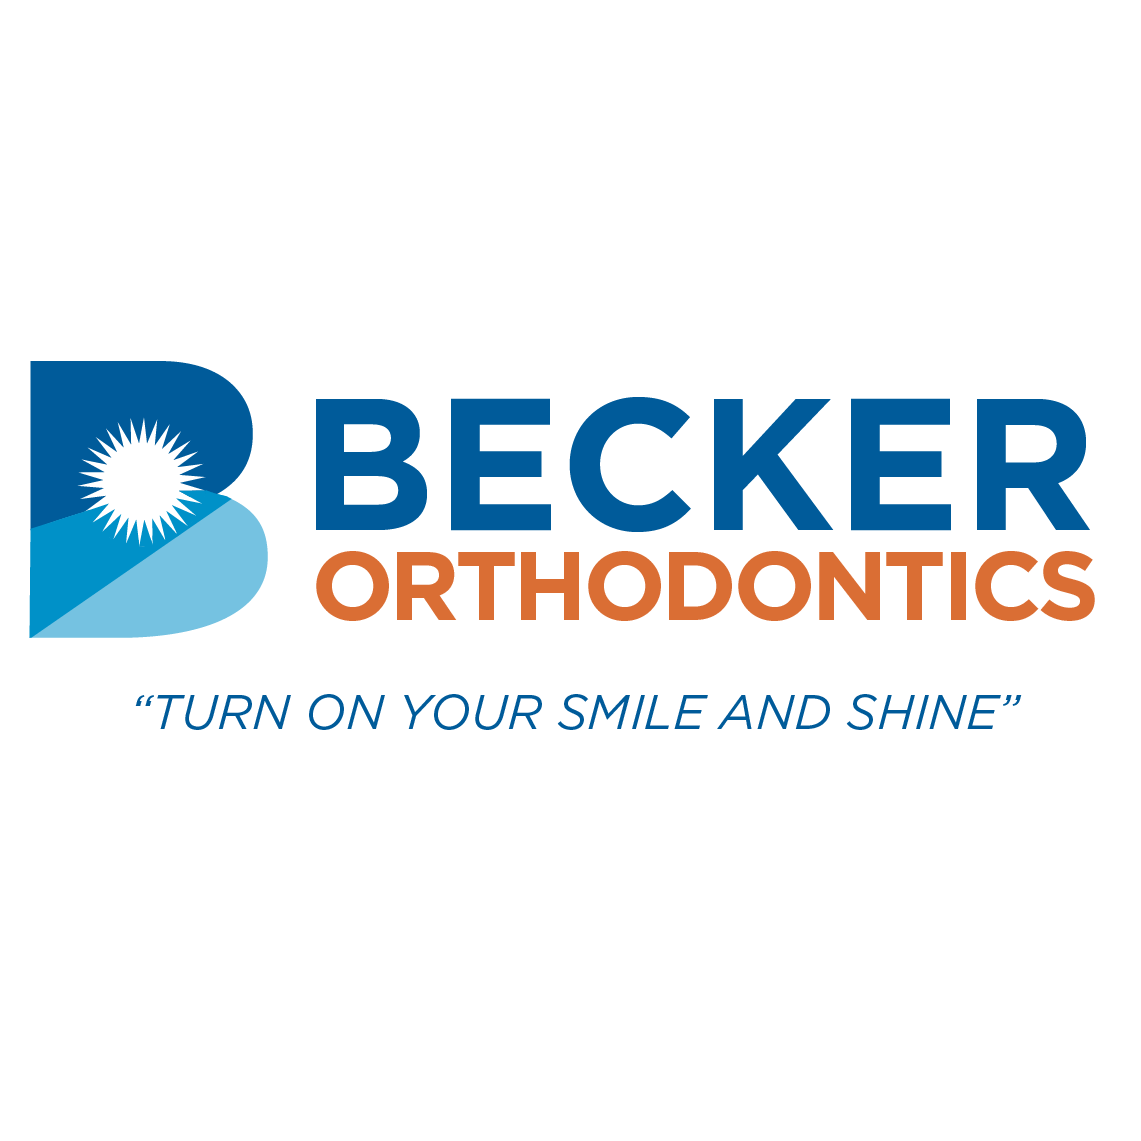 Becker Orthodontics